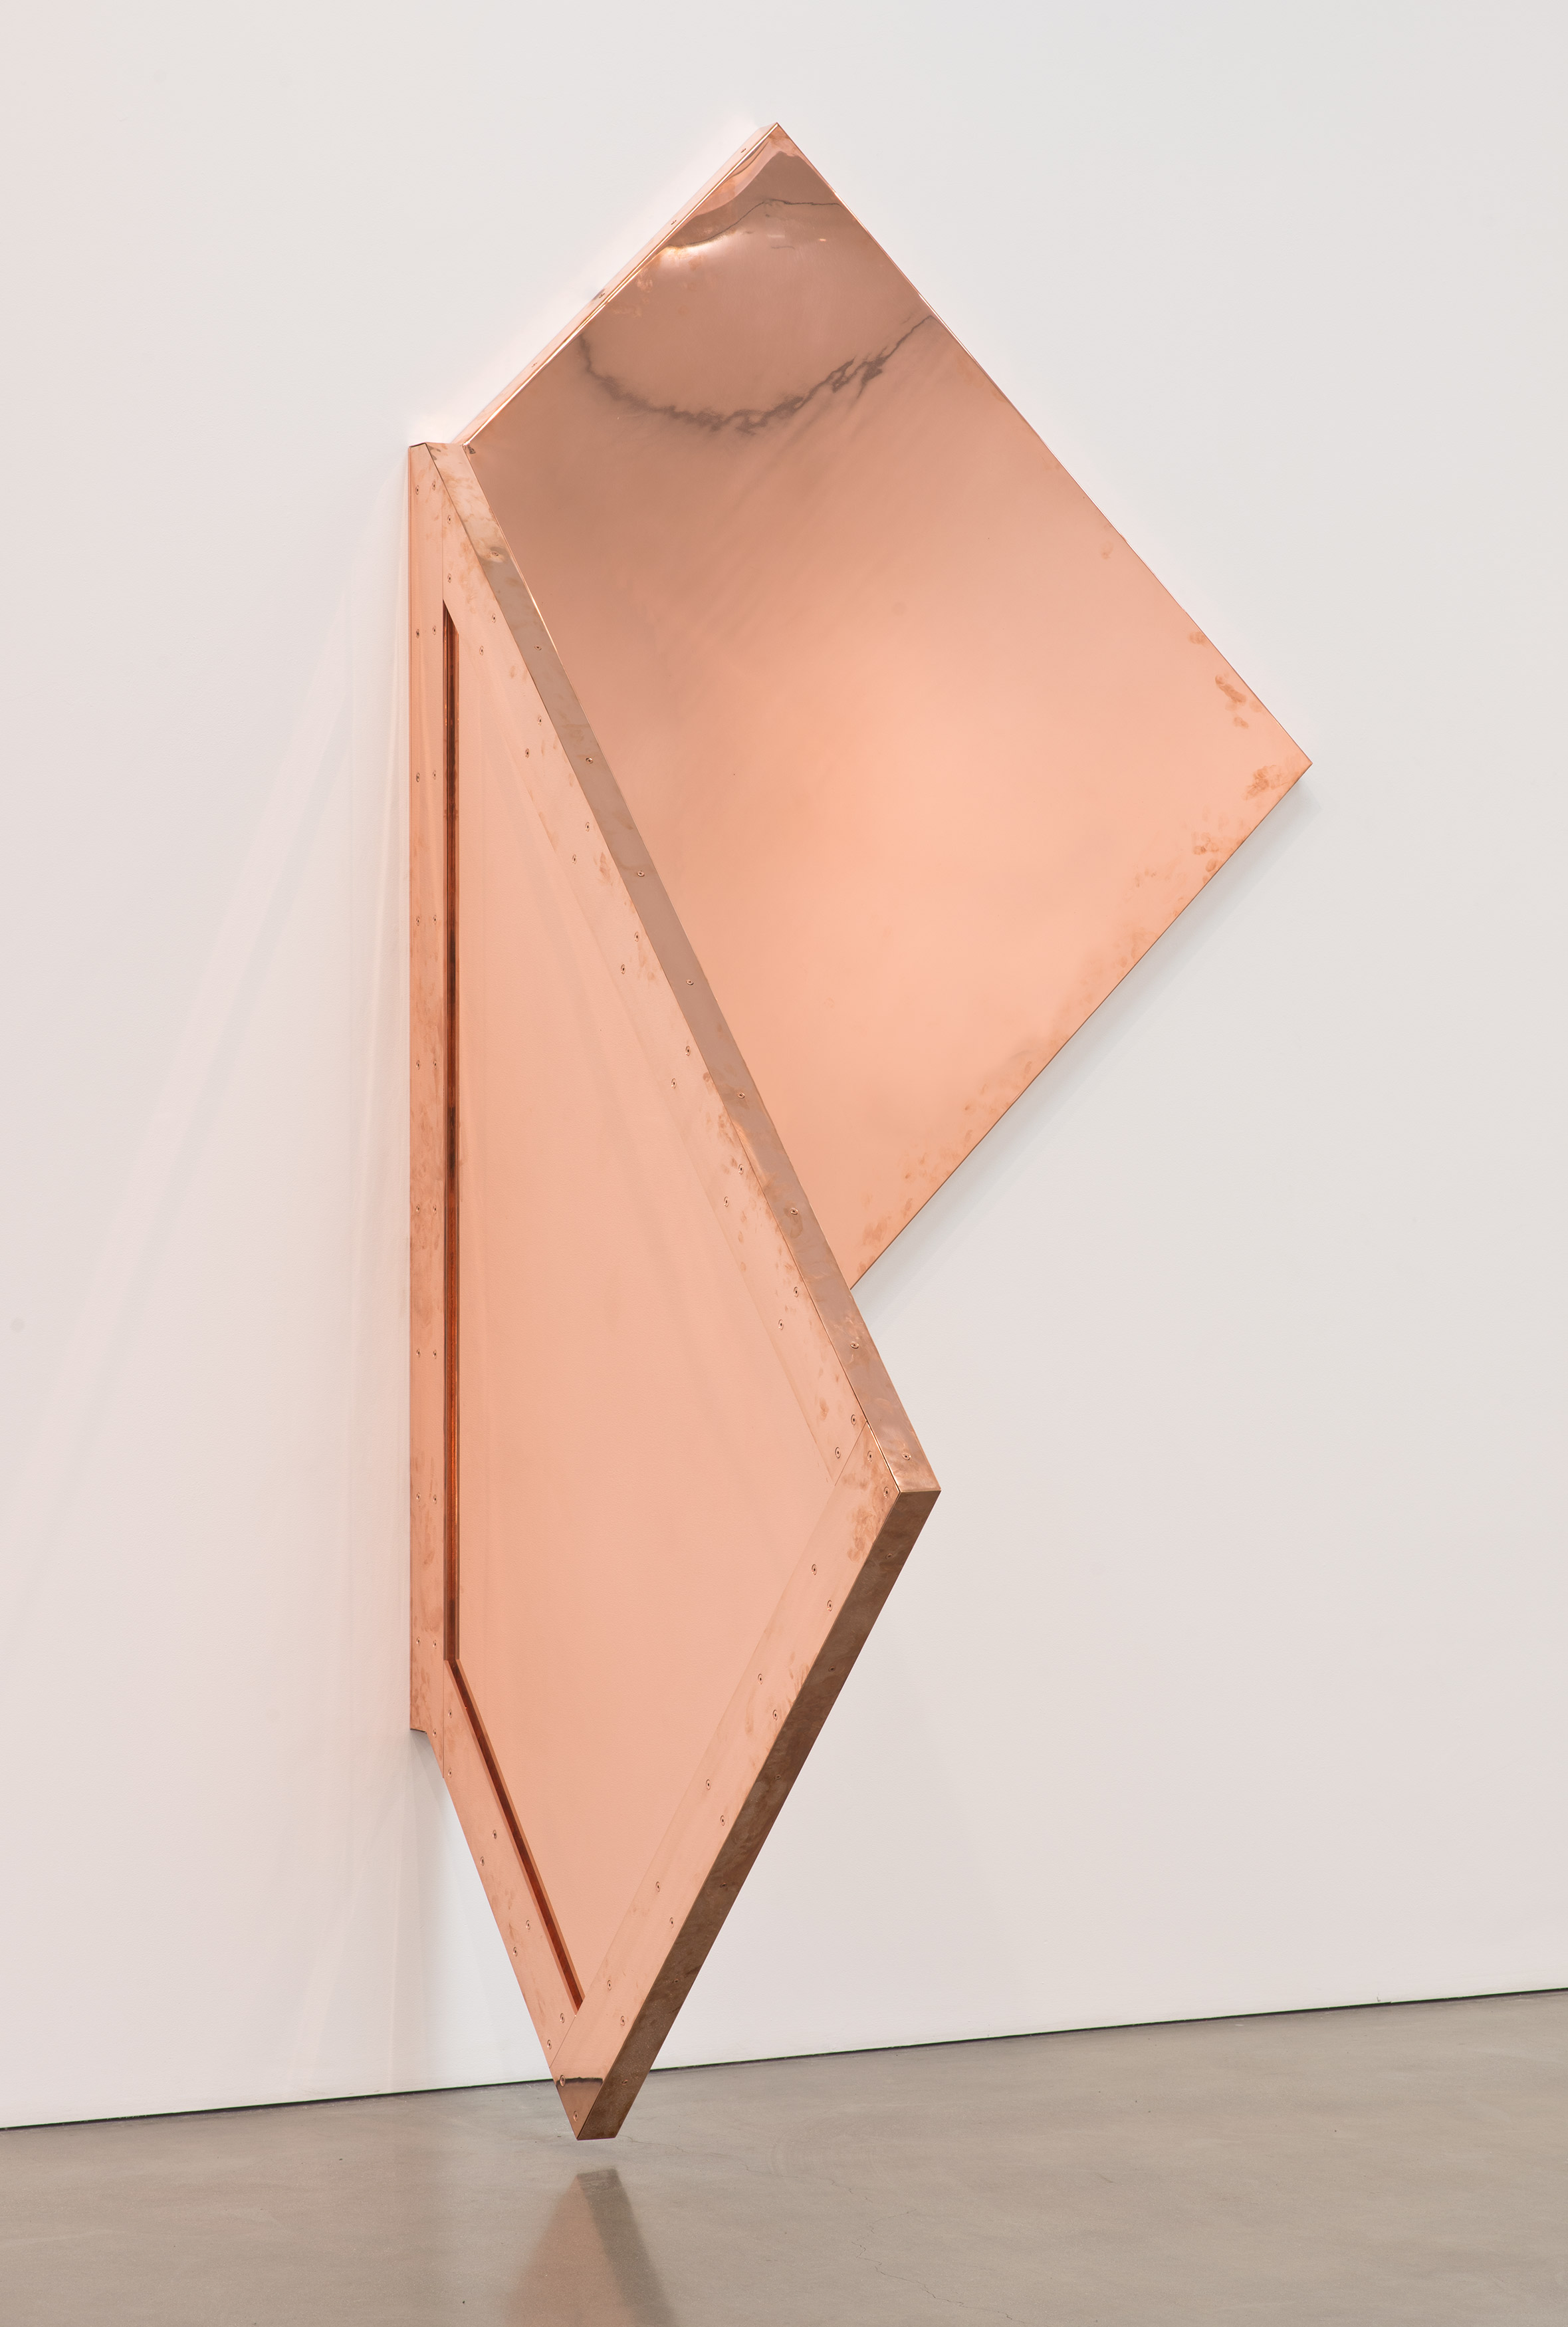 """Copper Surrogate (60"""" x 120"""" 48 ounce C11000 Copper Alloy, 90º Bend, 77 3/4""""45º Diagonal / 135º Antidiagonal Bisection: February 20/April 5, 2014, Los Angeles, California)   2014  Polished copper  110 x 60 x 50 inches   Surrogates (Full Sheet, Art Handling), 2011–    Selected Bodies of Work, 2014"""